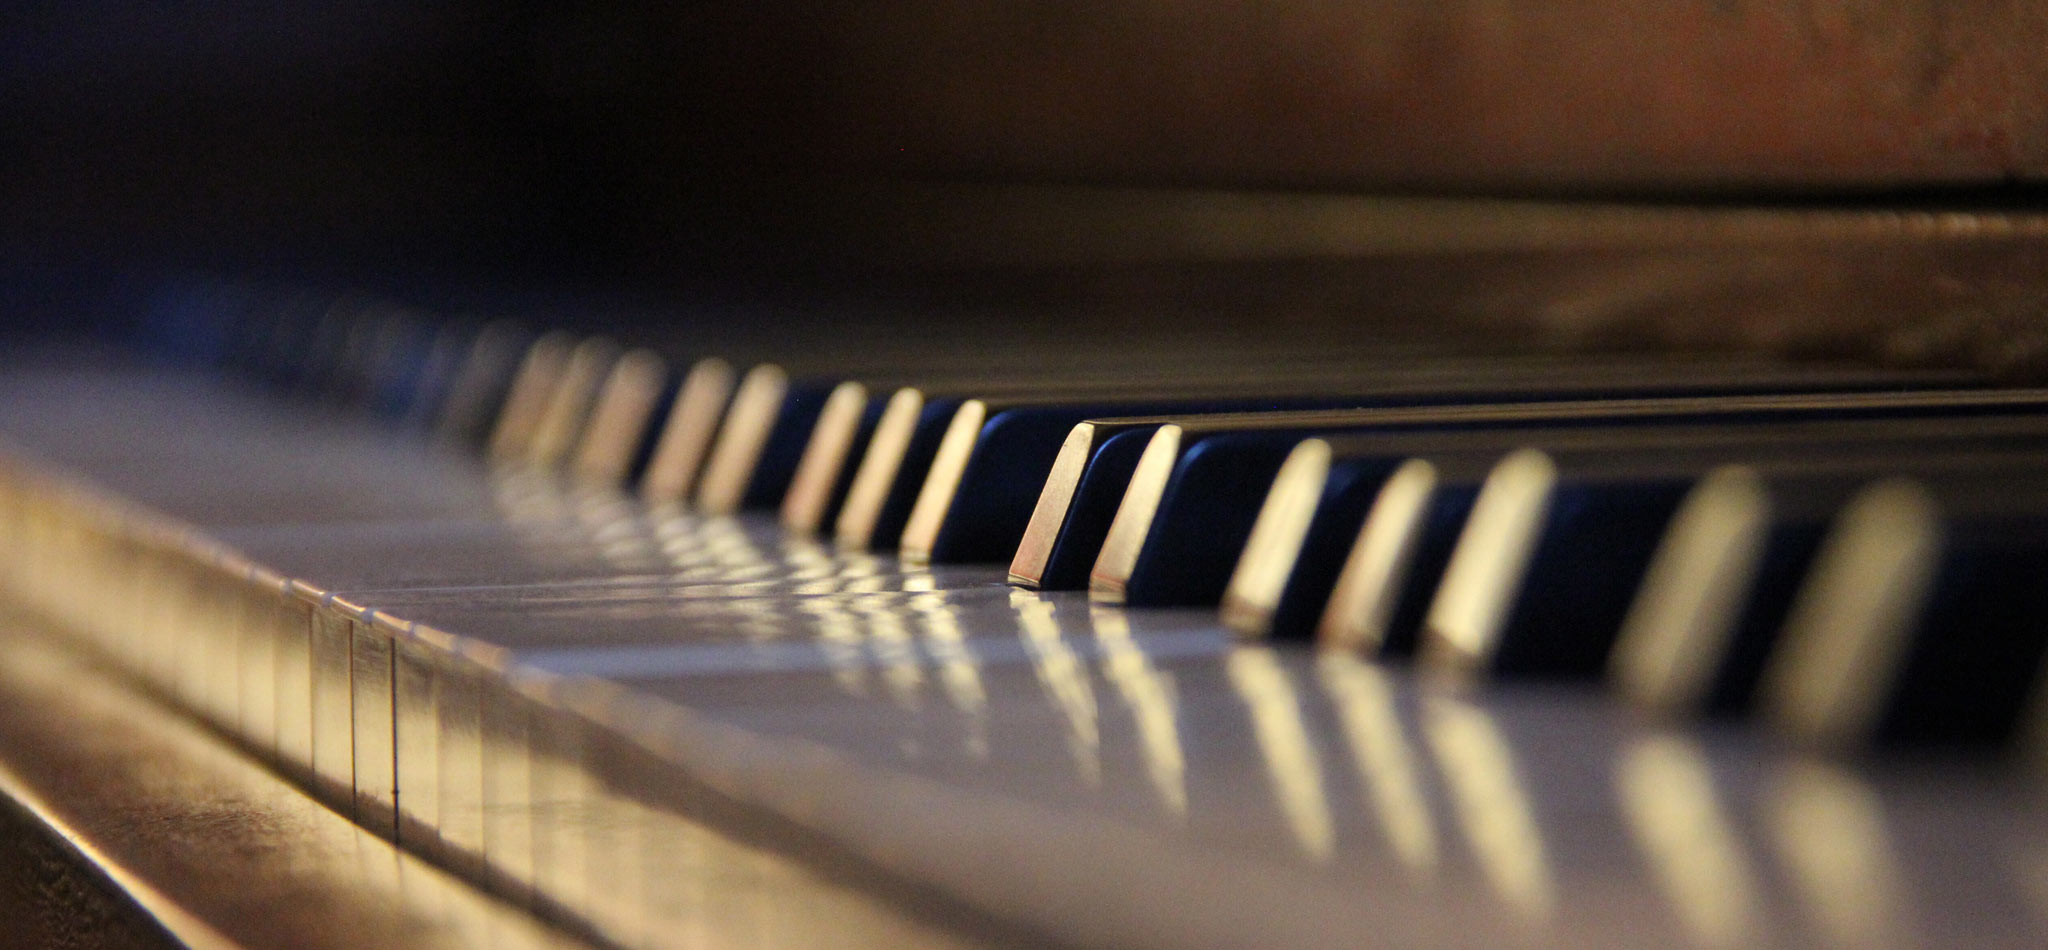 piano keys with lens blur effect